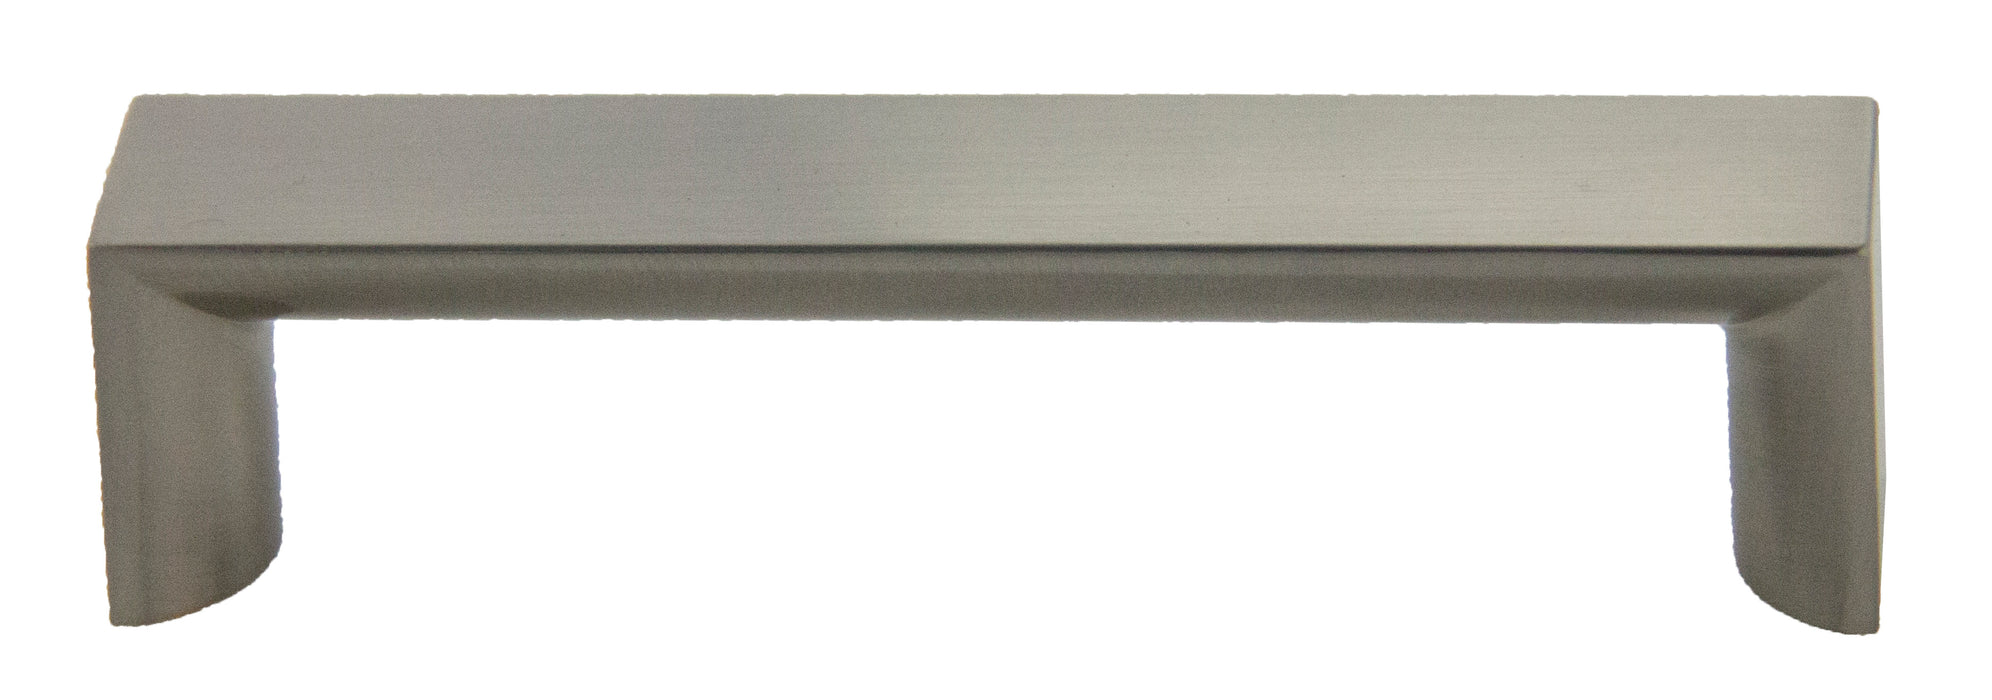 "Andrew Claire Collection 3-3/4"" Modern Pull Satin Nickel"